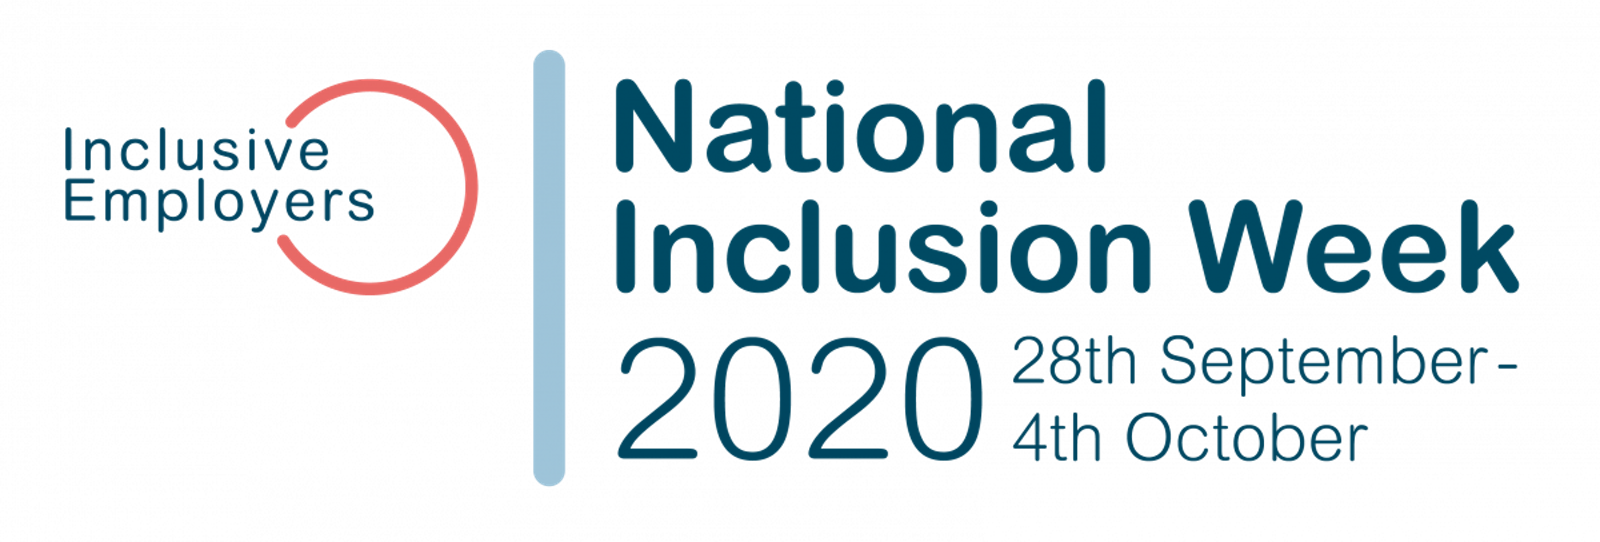 National Inclusion Week 2020